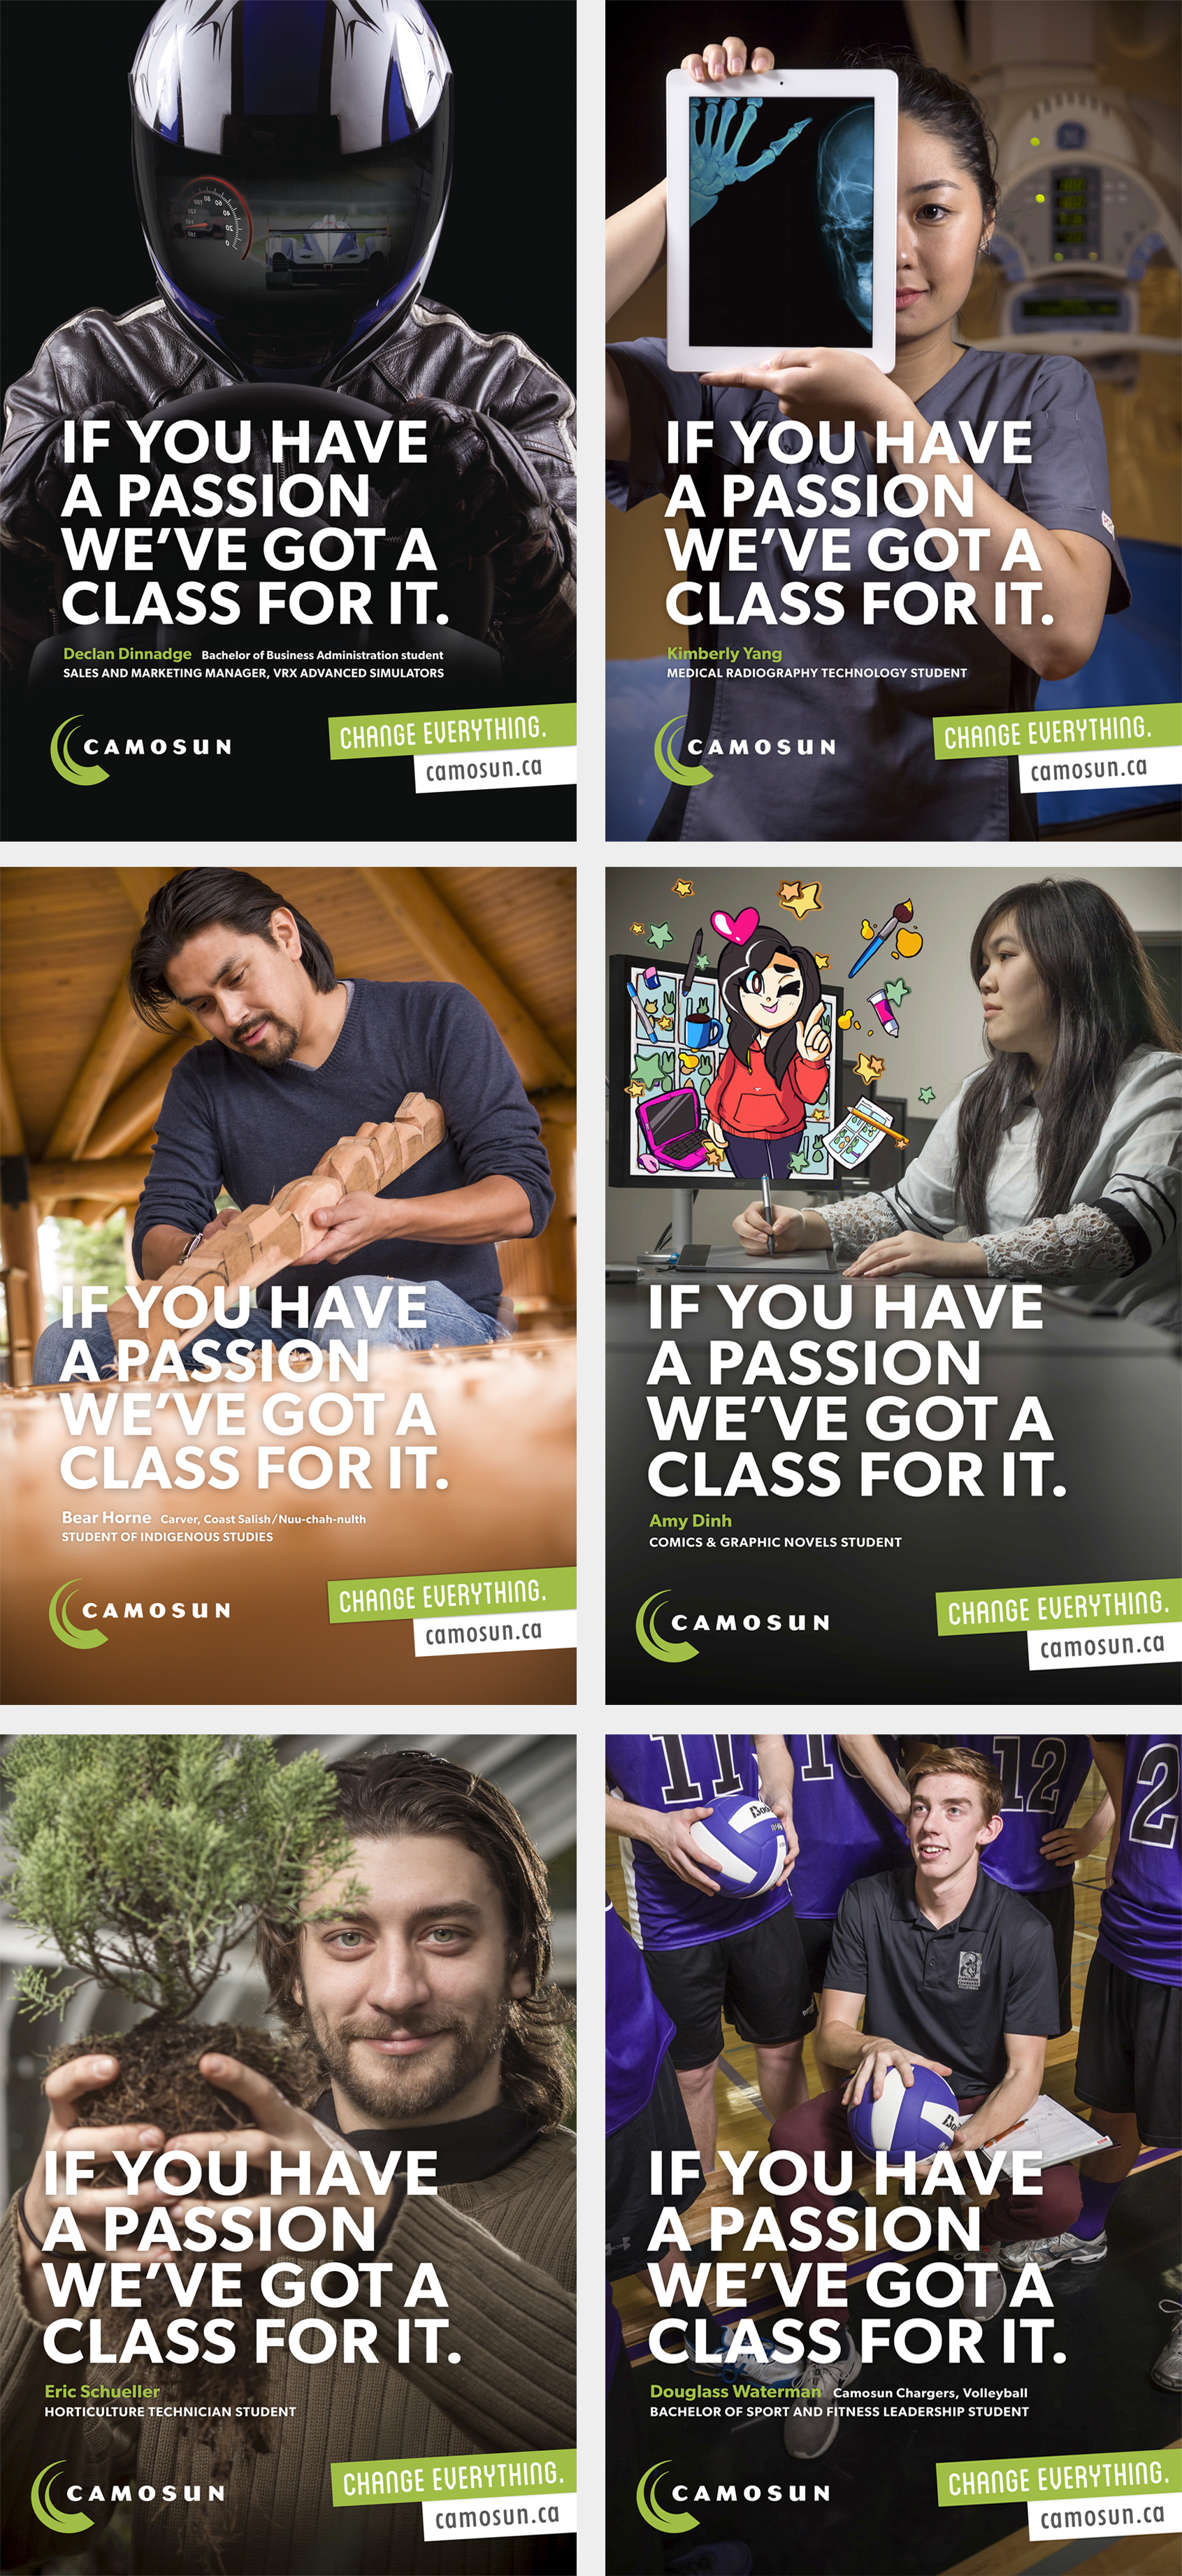 camosun-posters